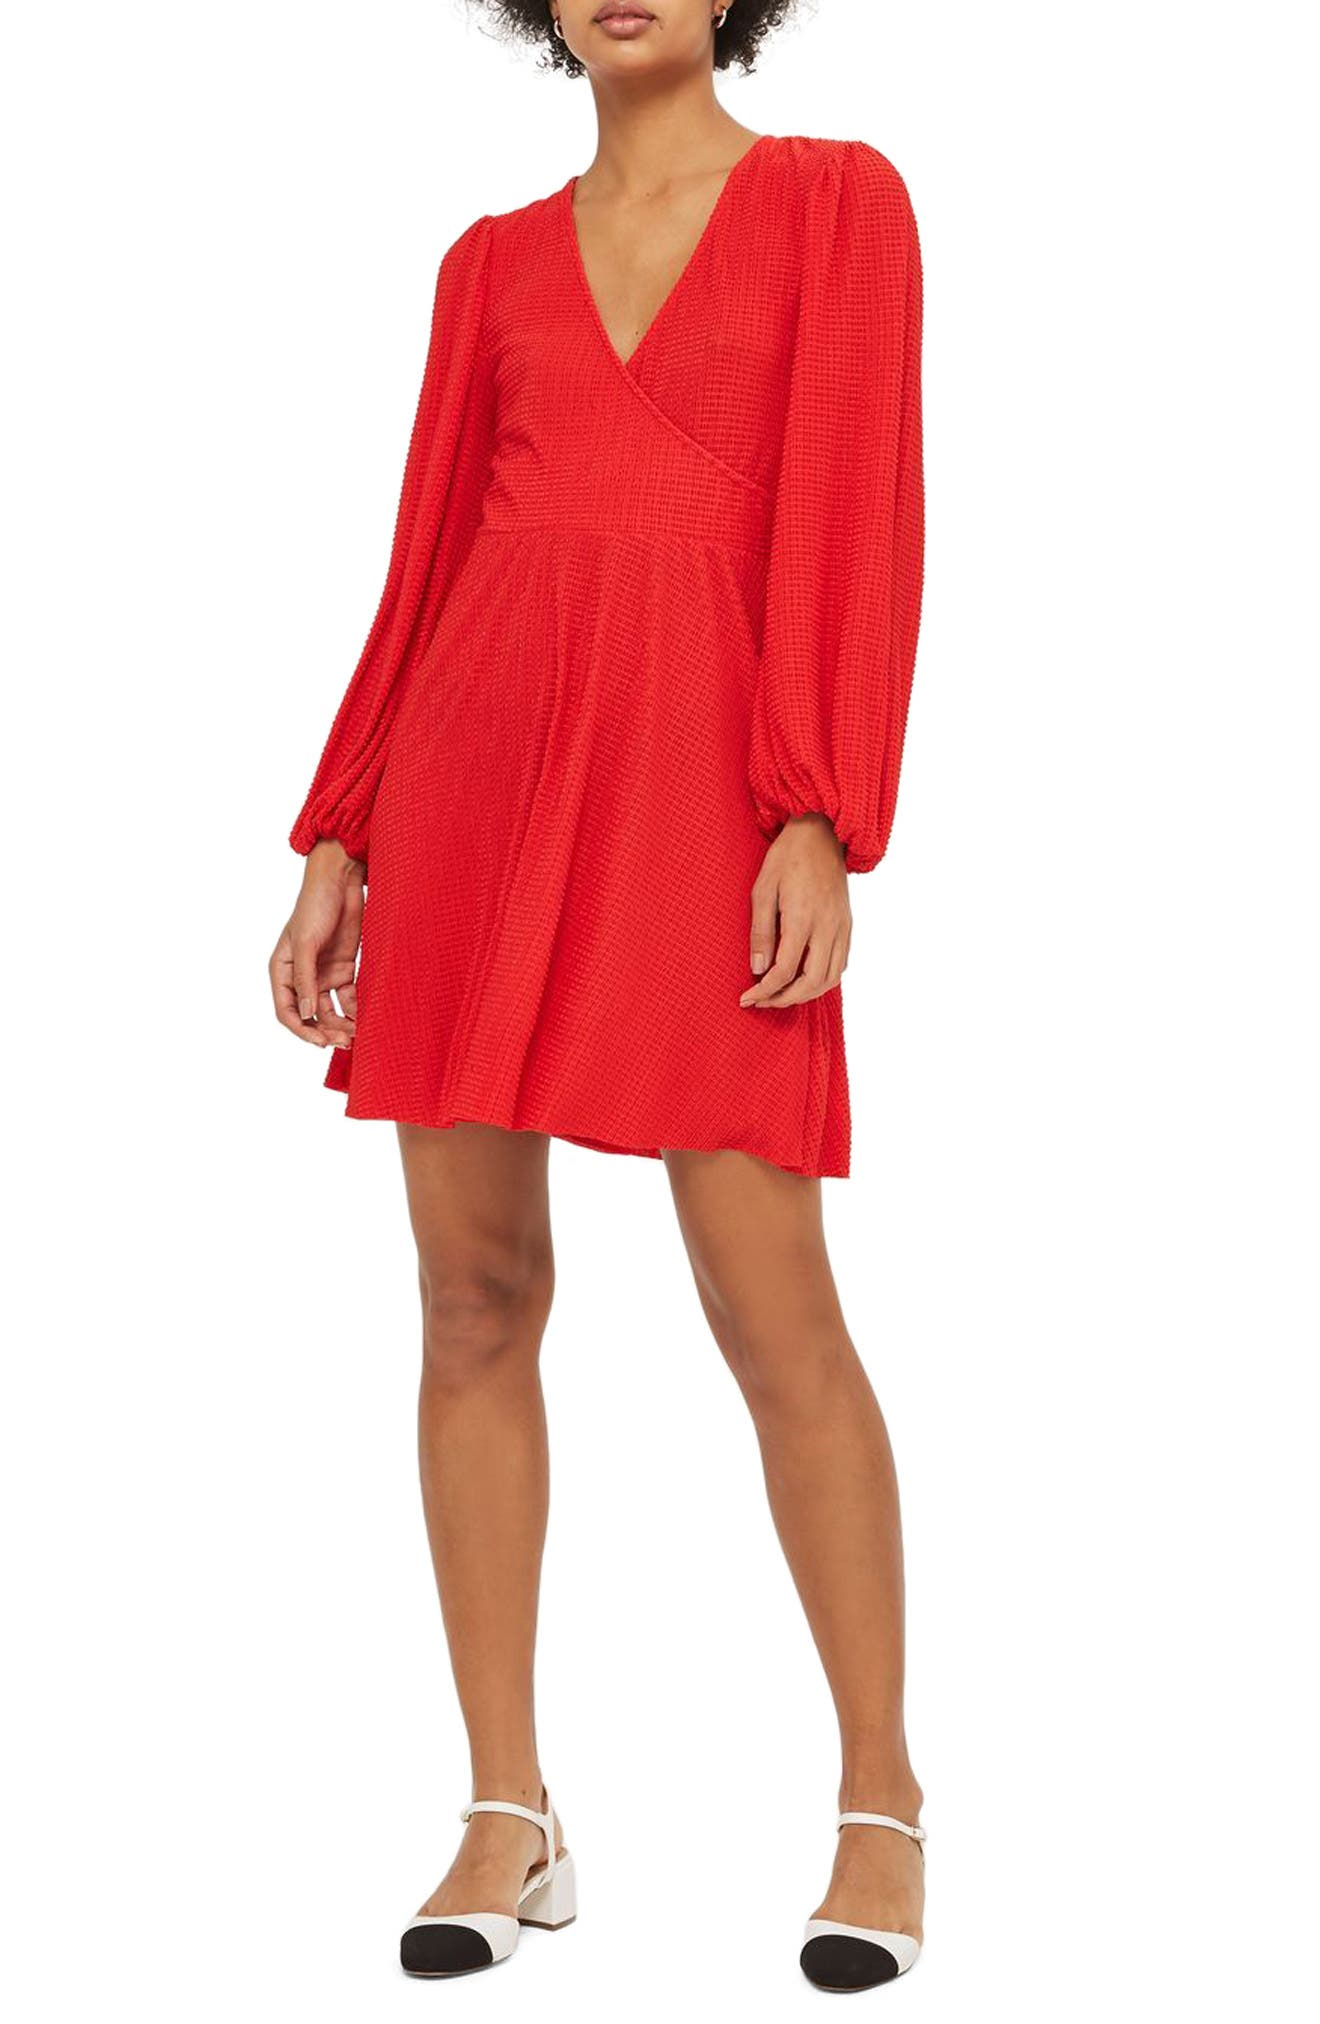 Topshop Plissé Wrap Dress